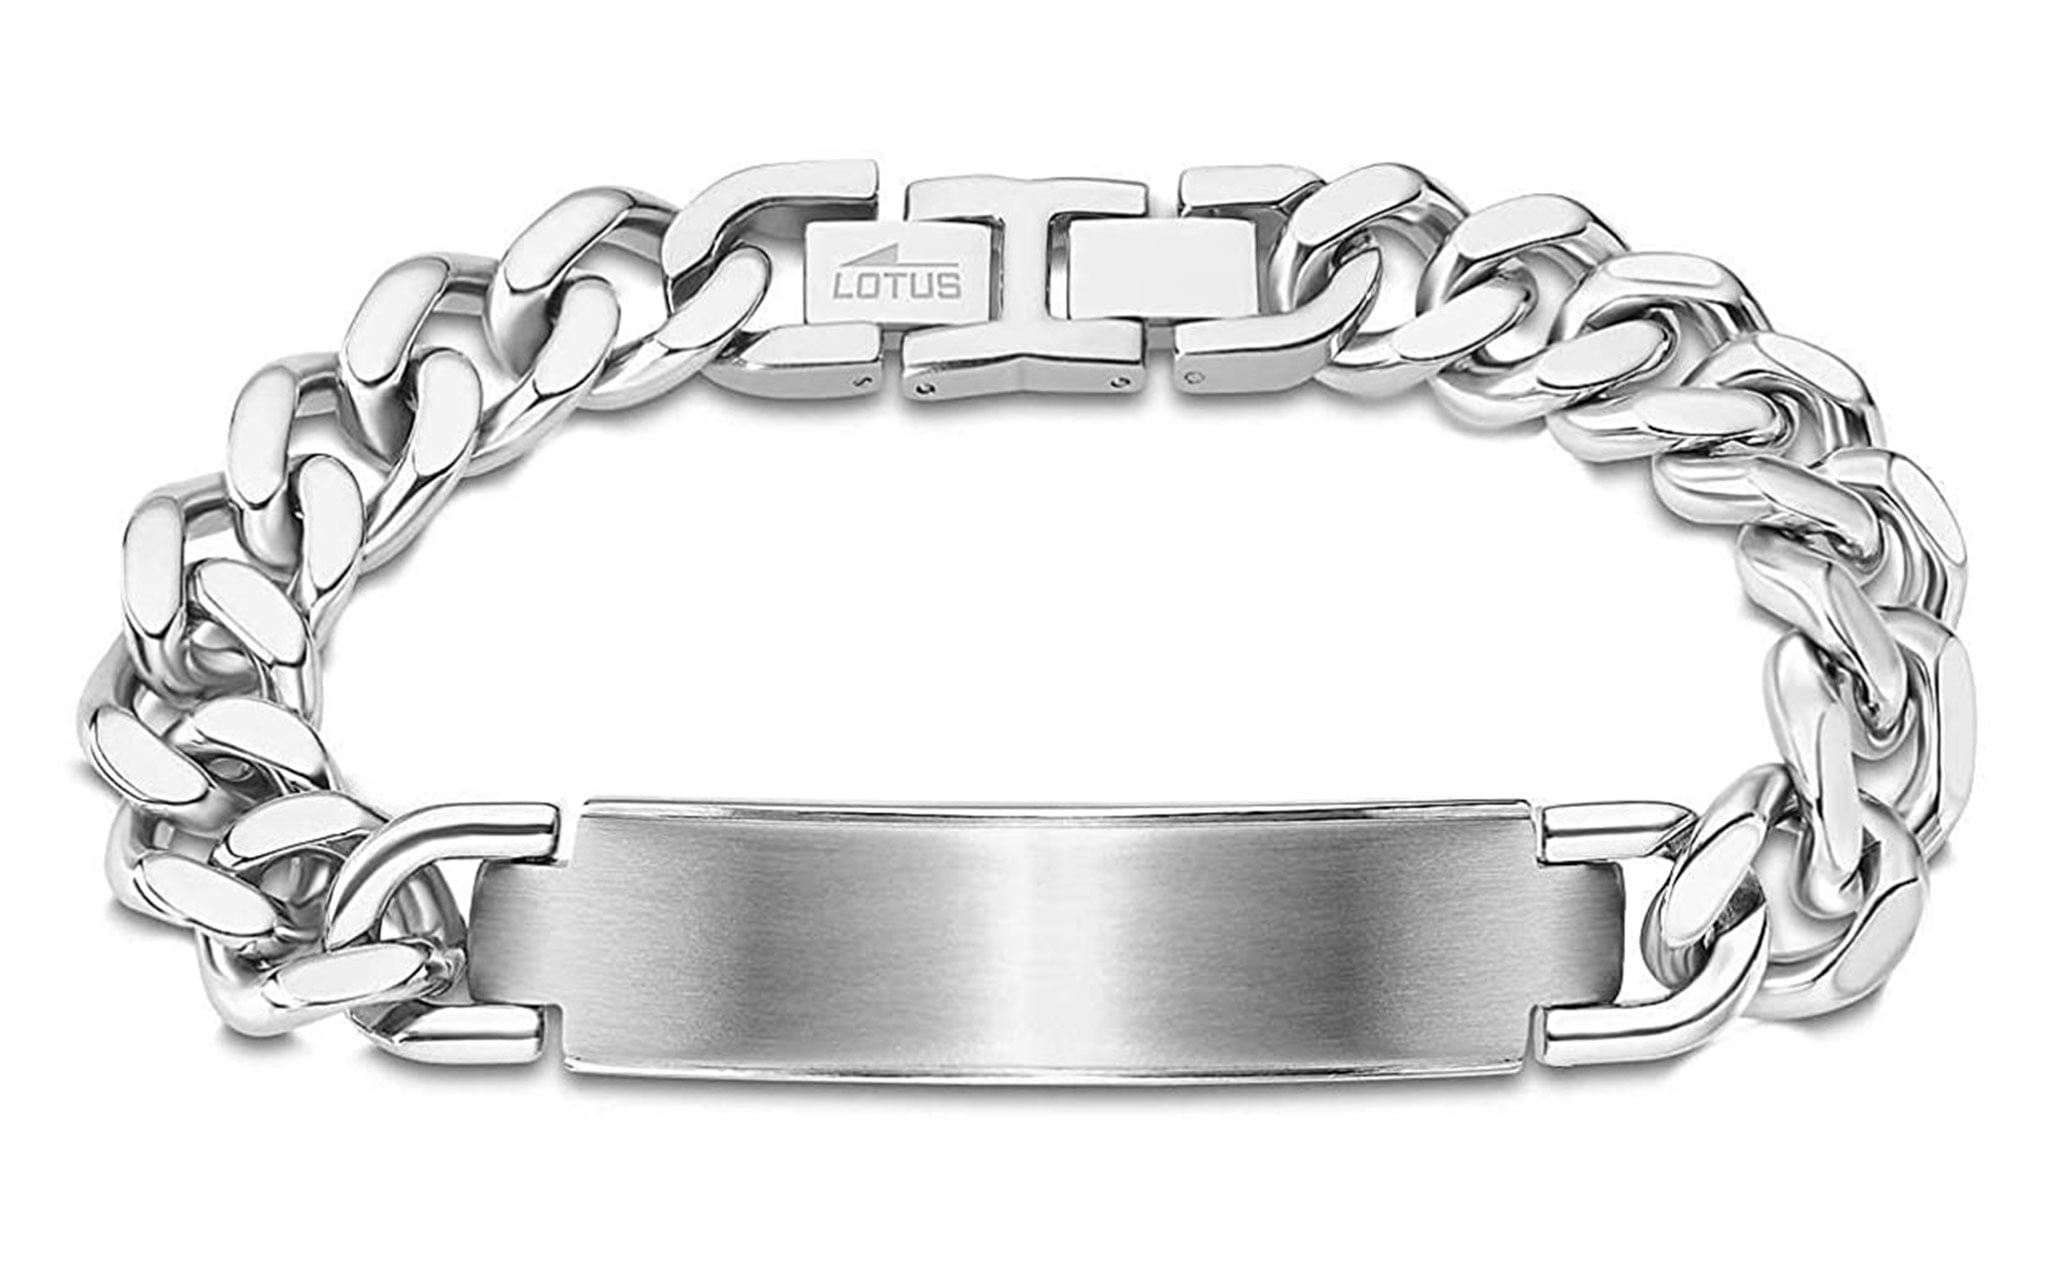 Lotus men's bracelet - Bonilla Jewelry